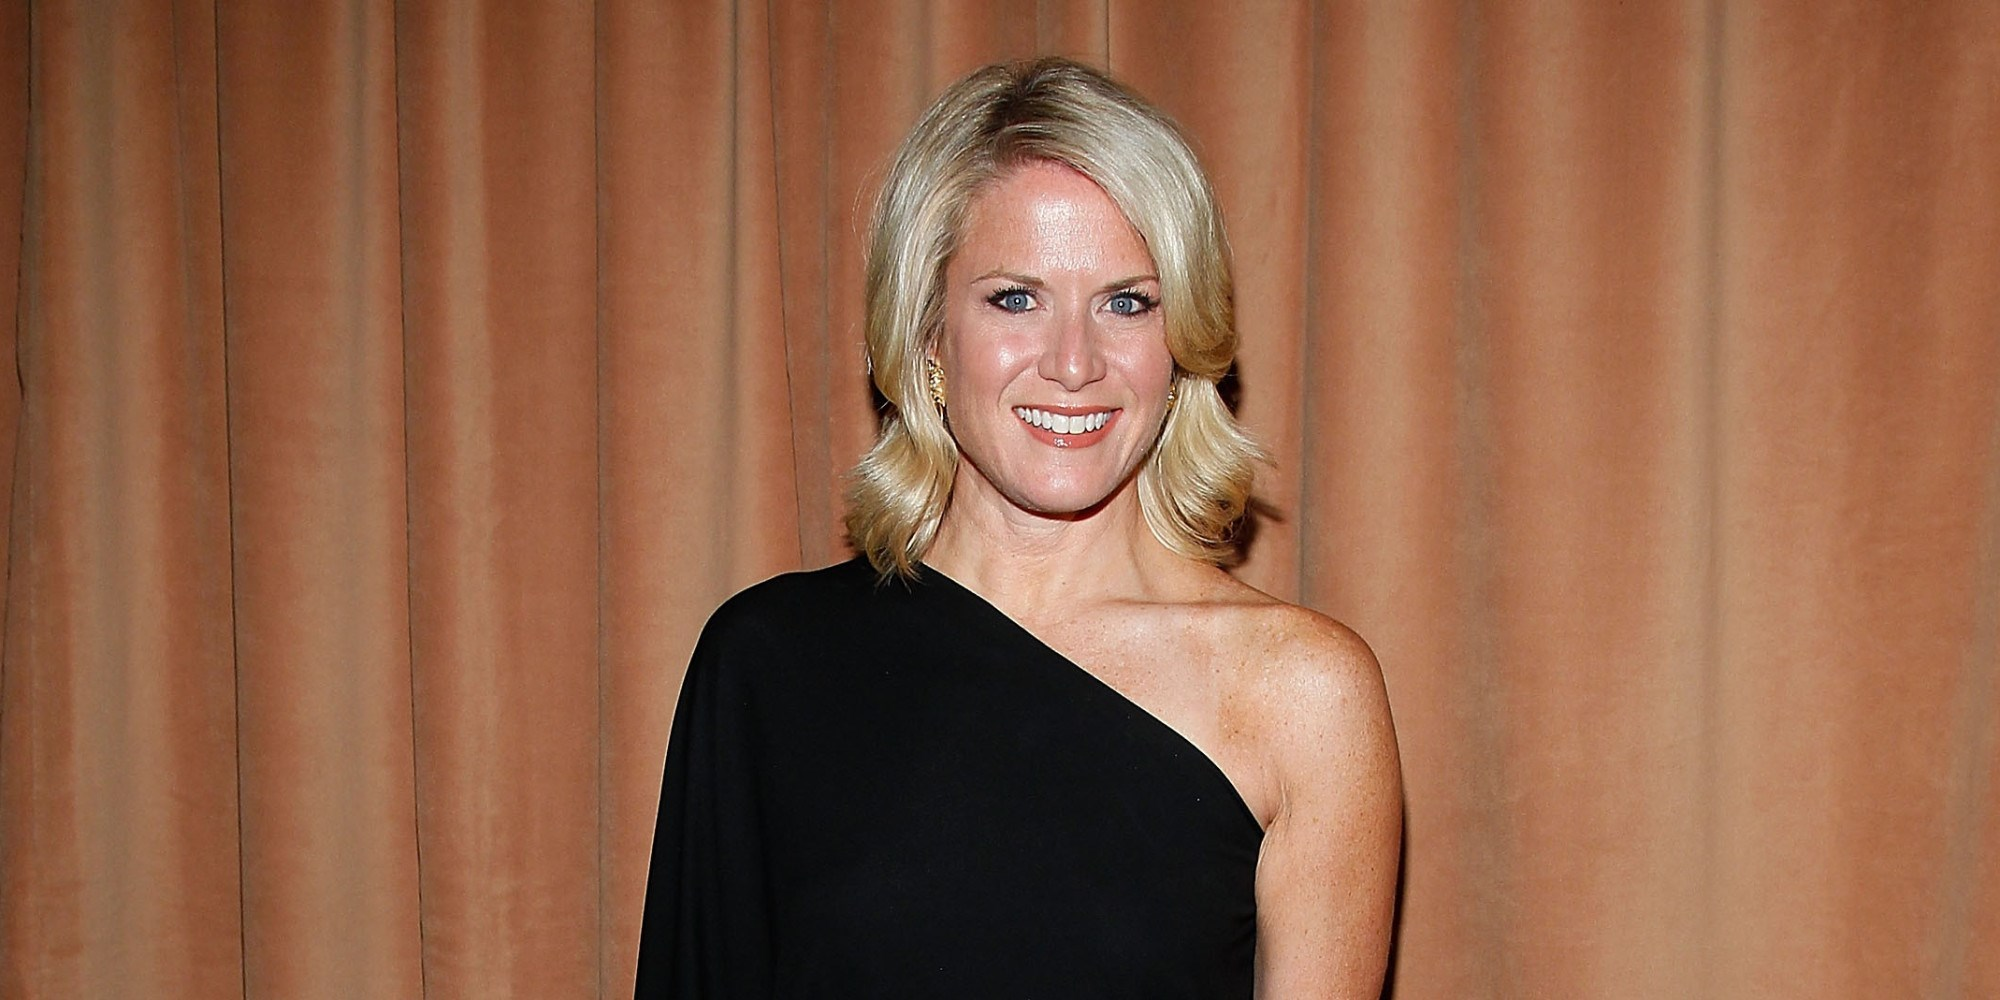 Martha maccallum known people famous people news and biographies